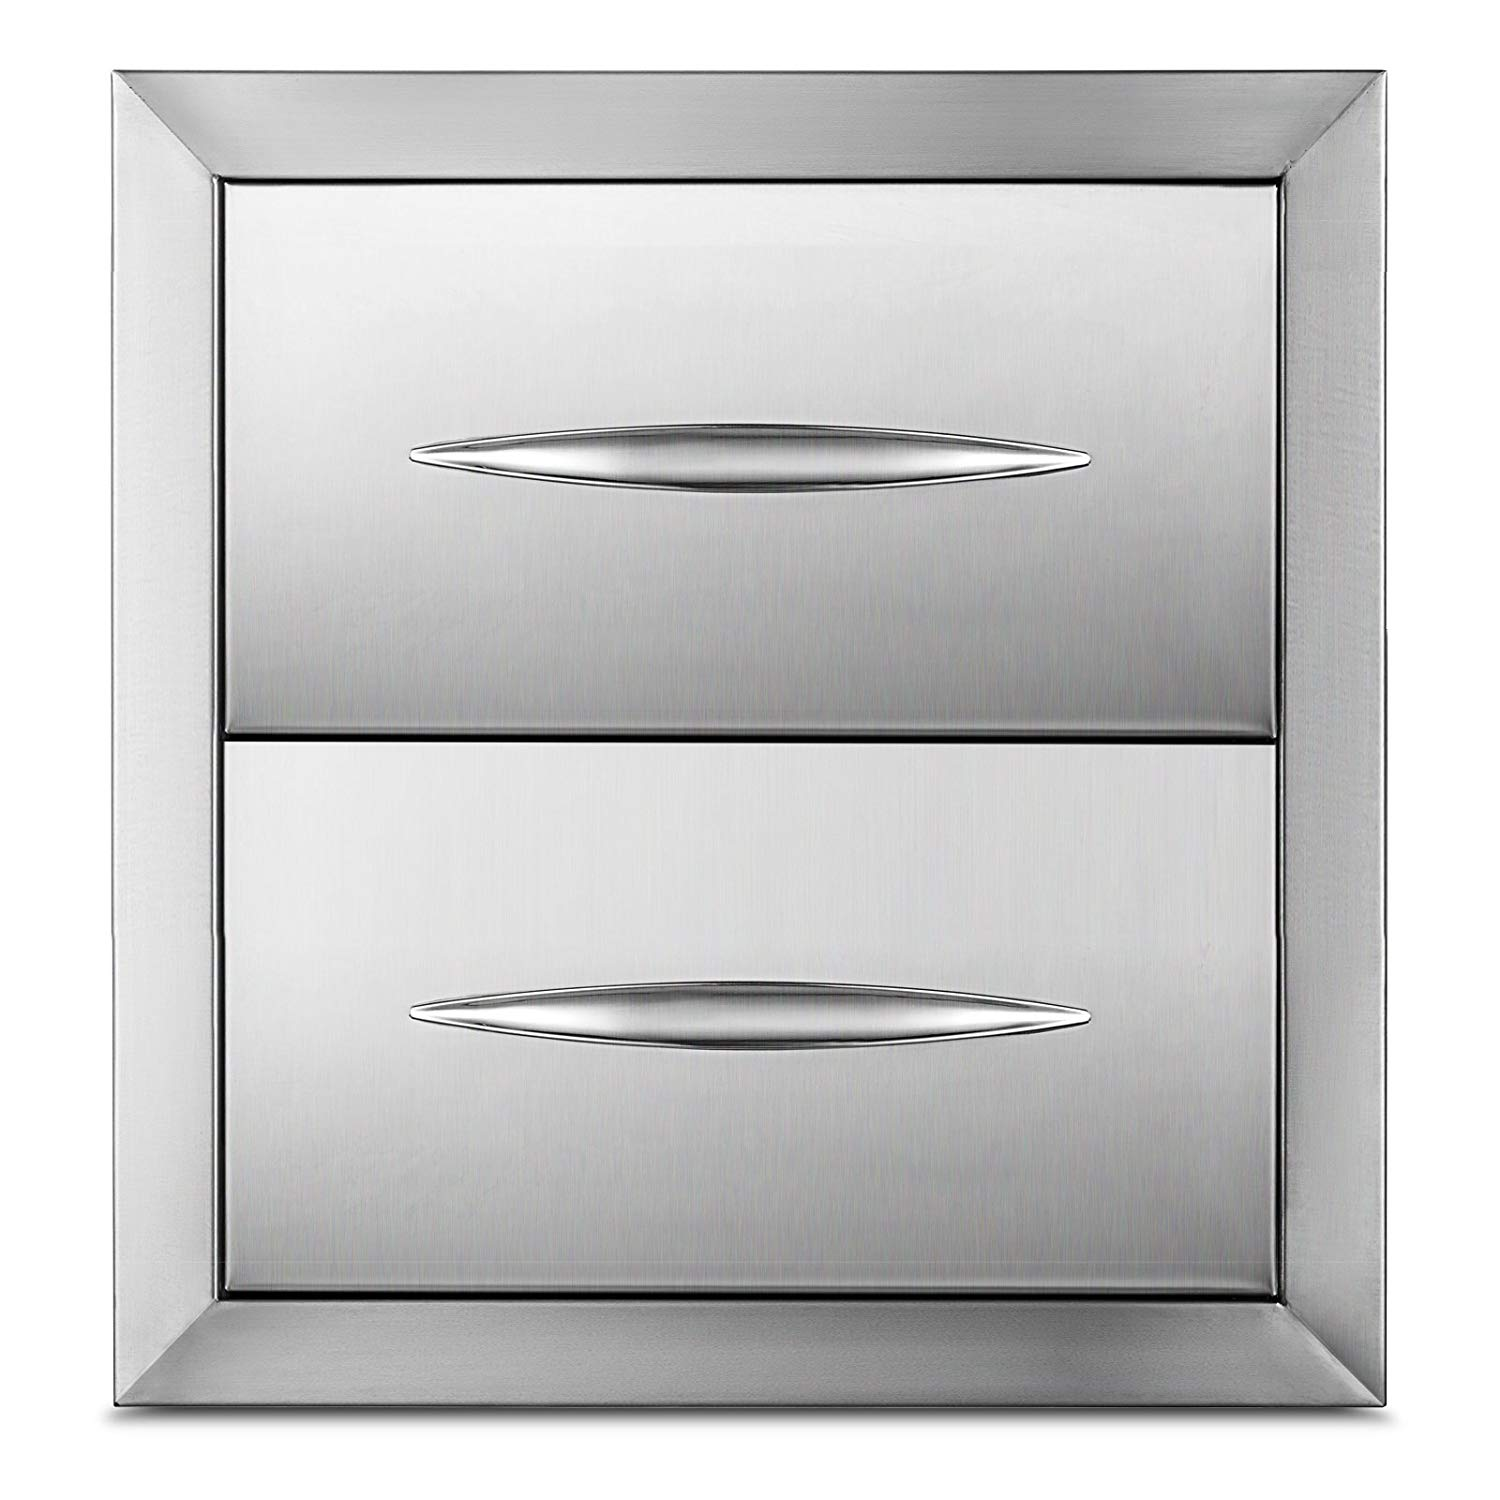 """Happybuy Outdoor kitchen drawer 18""""x15"""" Stainless steel BBQ Island Drawer storage with Chrome Handle Double Access Drawer Flush Mount Sliver Double Access Drawer (Outdoor kitchen Drawer 14.38""""x14"""")"""